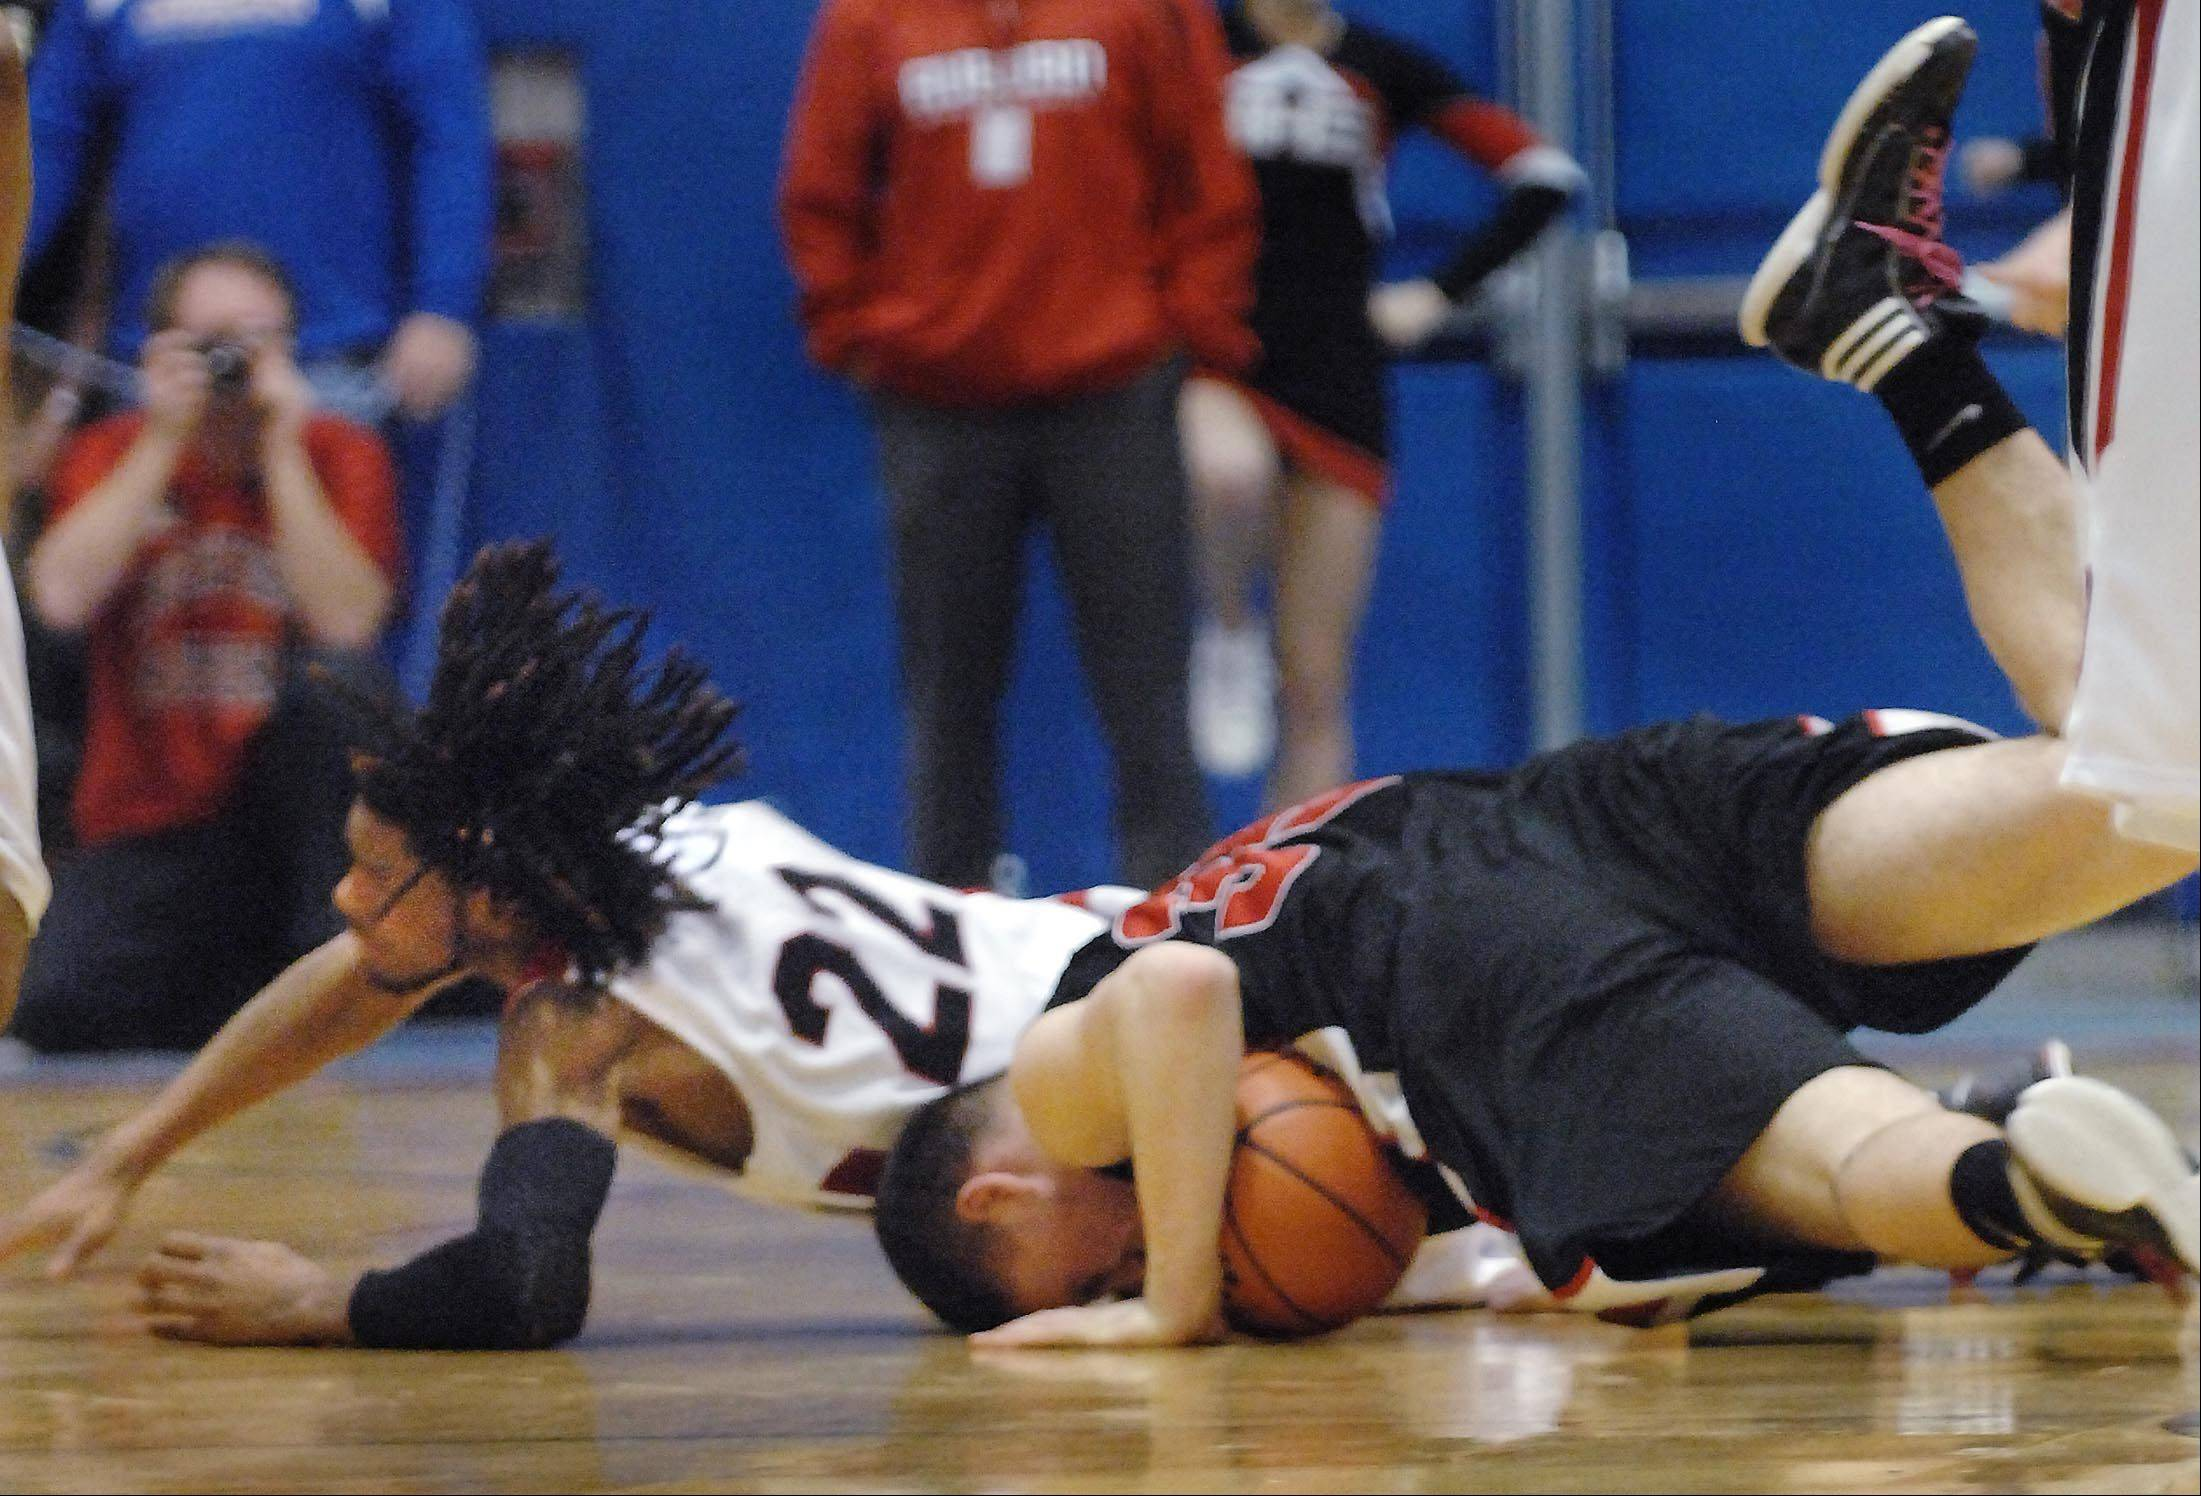 Huntley's Justin Frederick gets his head slammed to the floor as Rockford Auburn's LaMark Foote falls on him as they chase a loose ball.